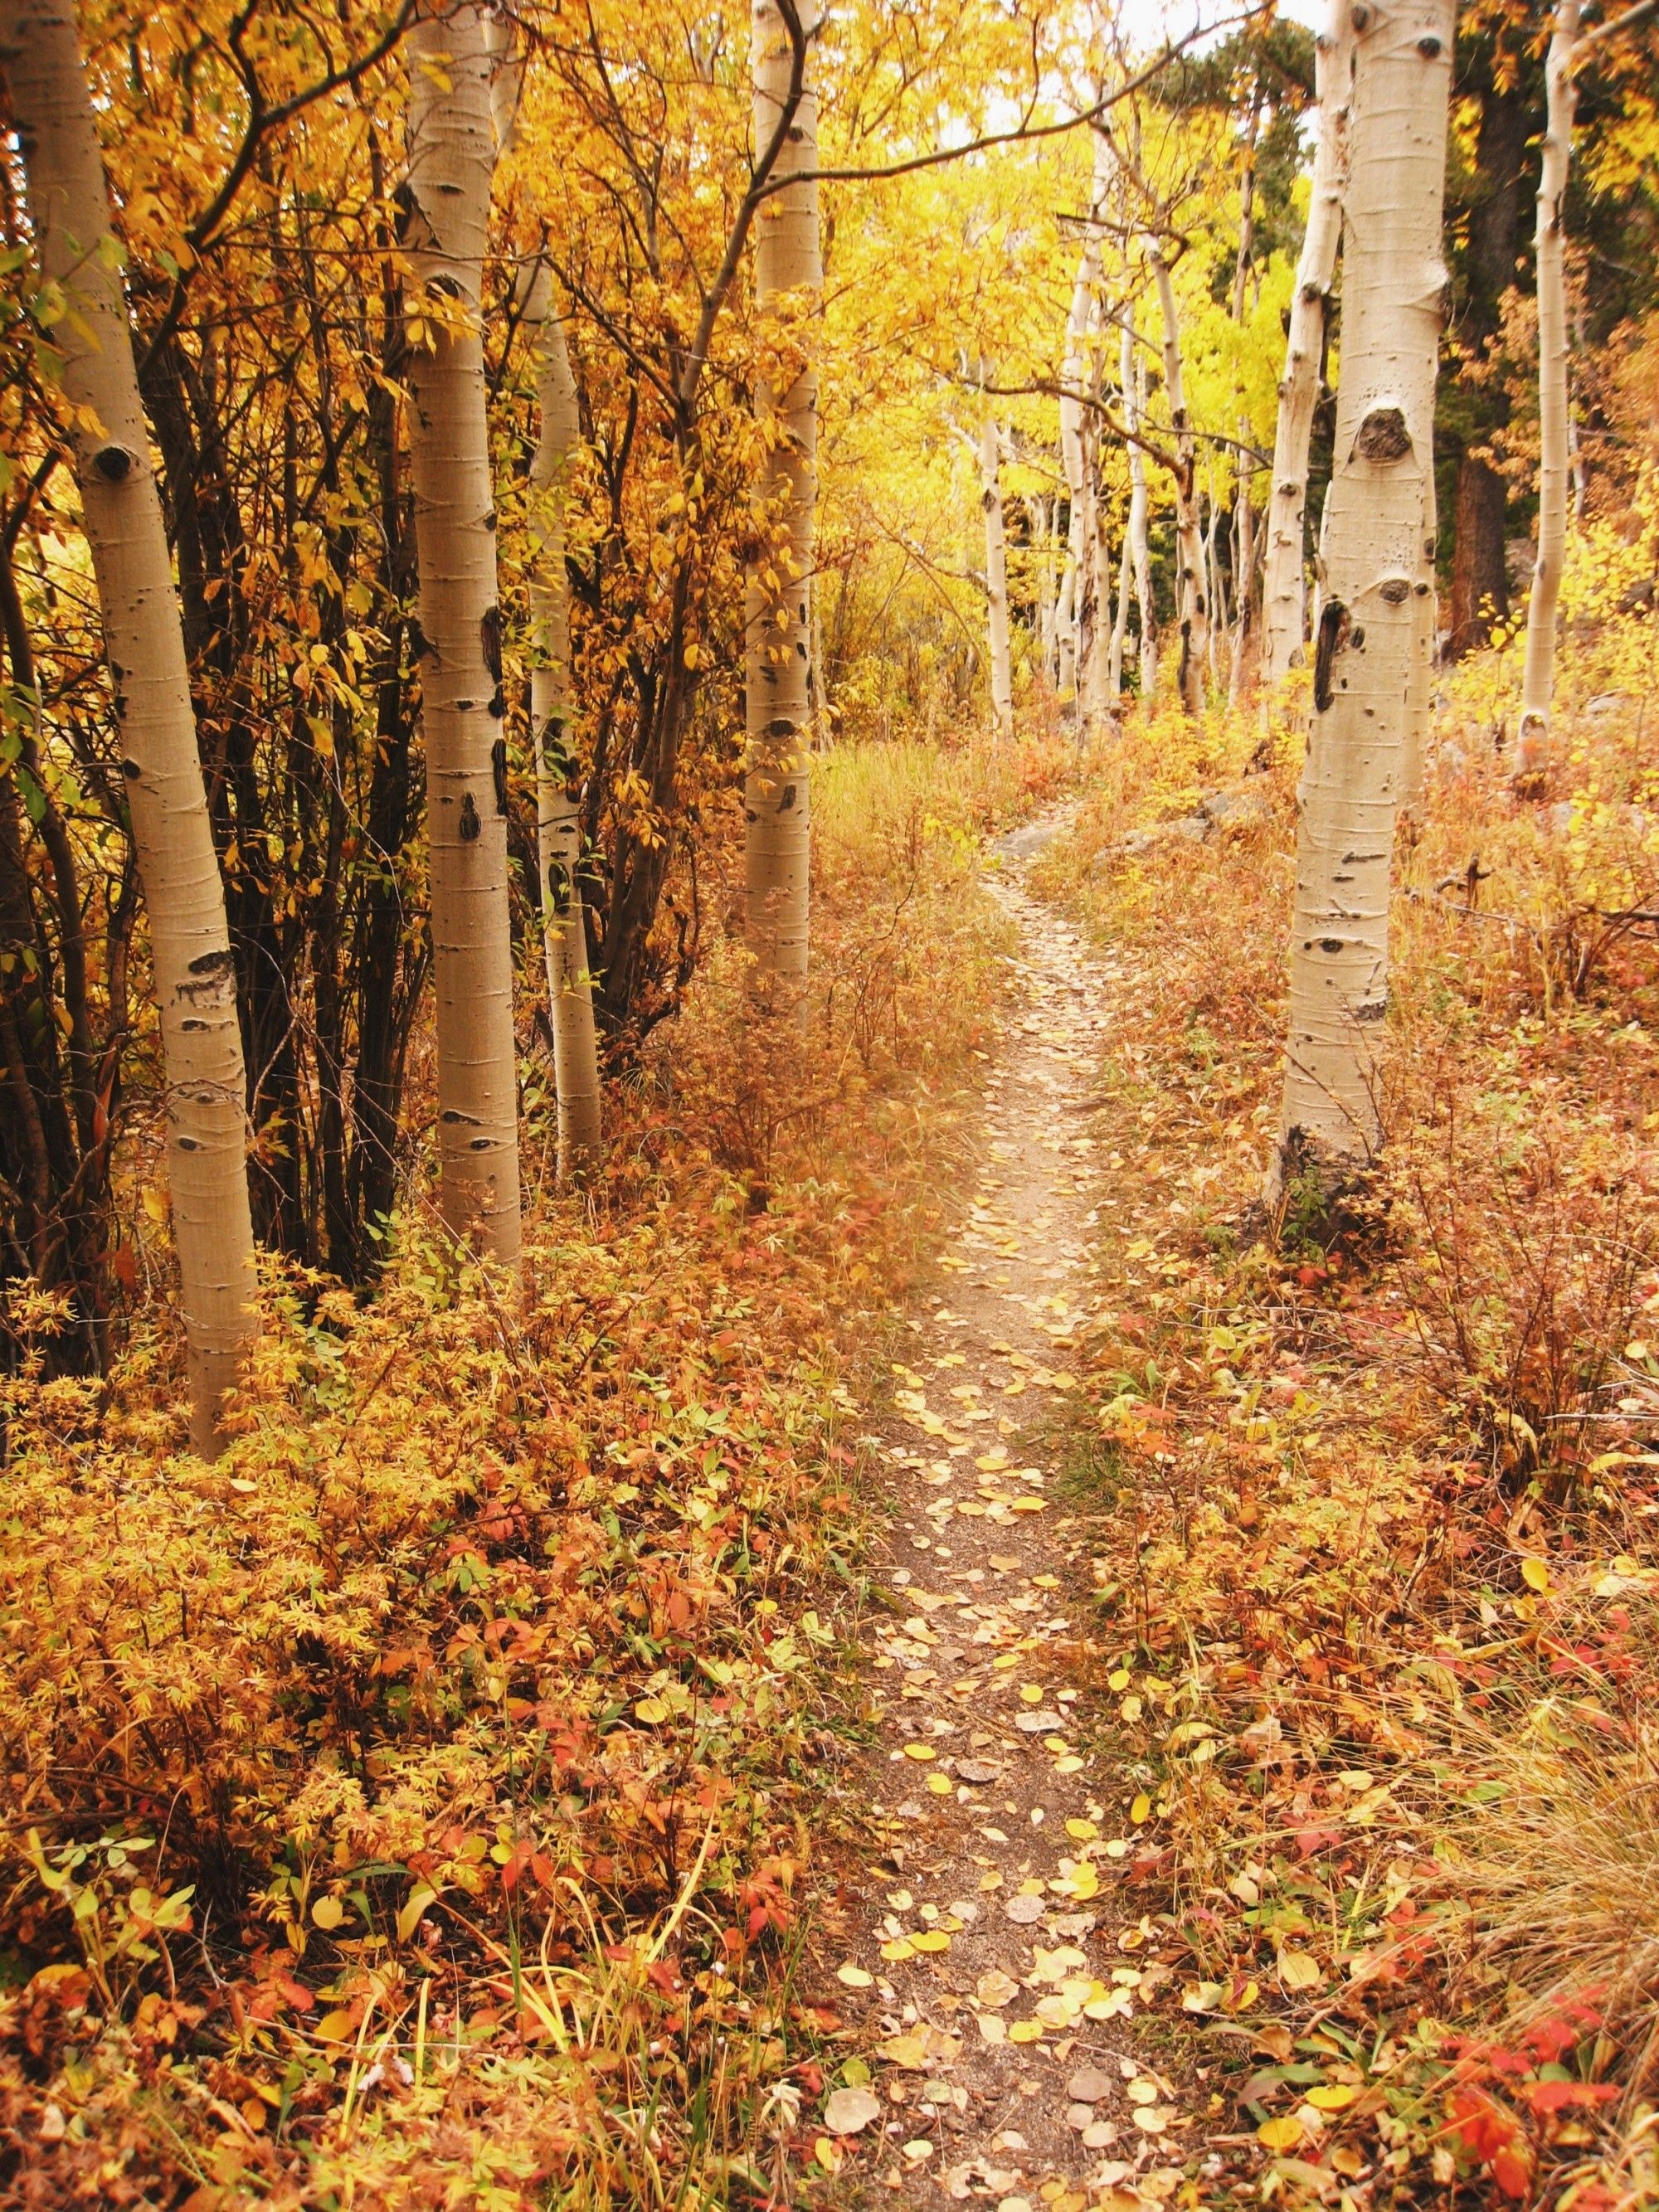 Autumn Forest Taiwan: A Magical Hike In Golden Gate Canyon State Park, Colorado